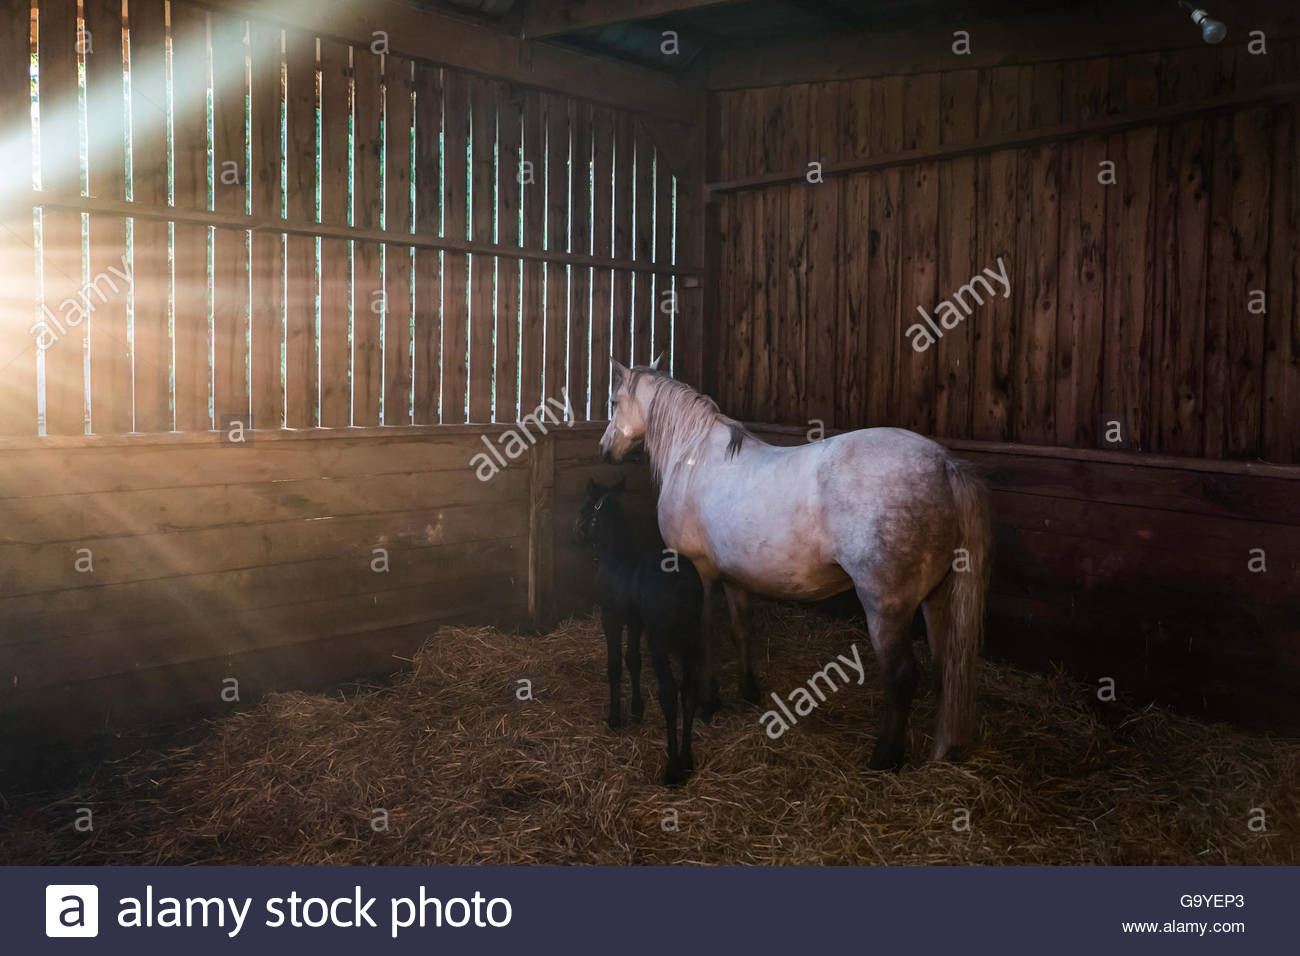 Bonchester Bridge, Hawick, Scottish Borders, UK. 1st July 2016. A Connemara mare and foal in their stable and straw - Stock Image